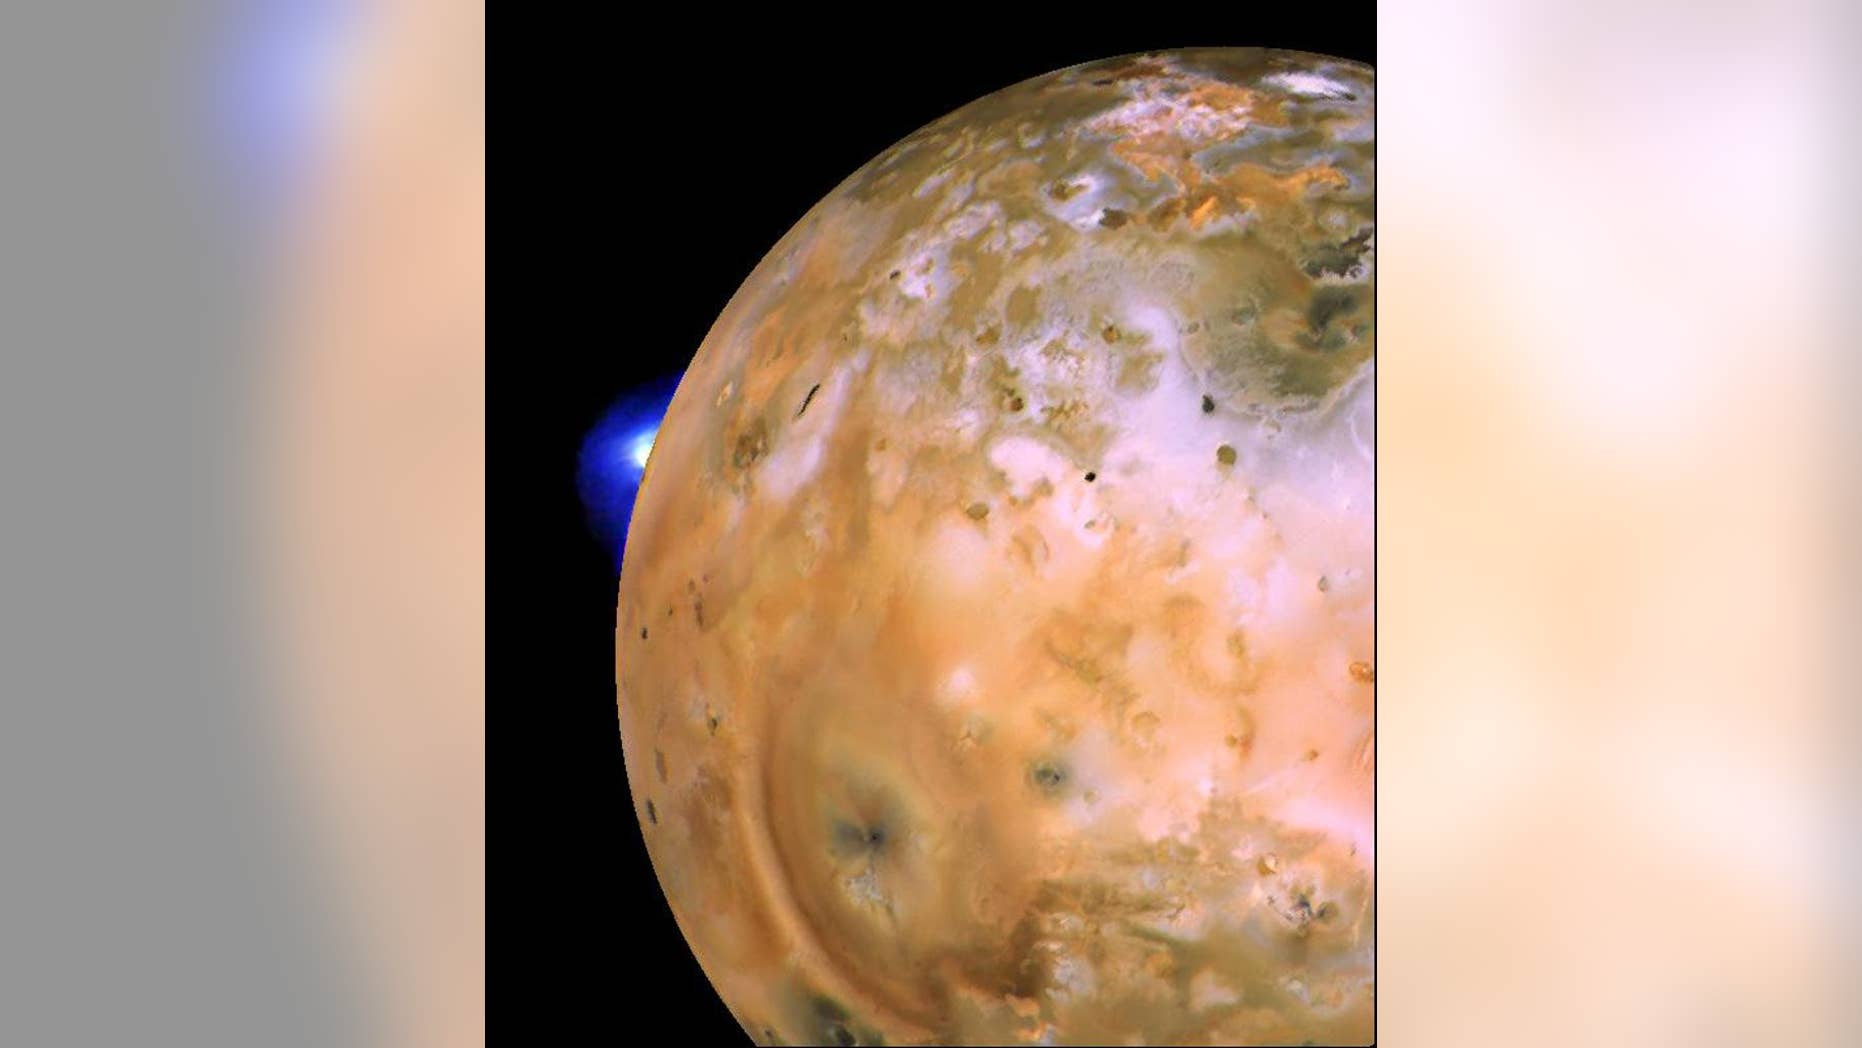 Voyager 1 image of Jupiter's volcanic moon Io showing the active plume of a volcano called Loki. Th heart-shaped feature southeast of Loki consists of fallout deposits from active plume Pele. The images that make up this mosaic were taken from an average distance of about 340,000 miles (490,000 kilometers).